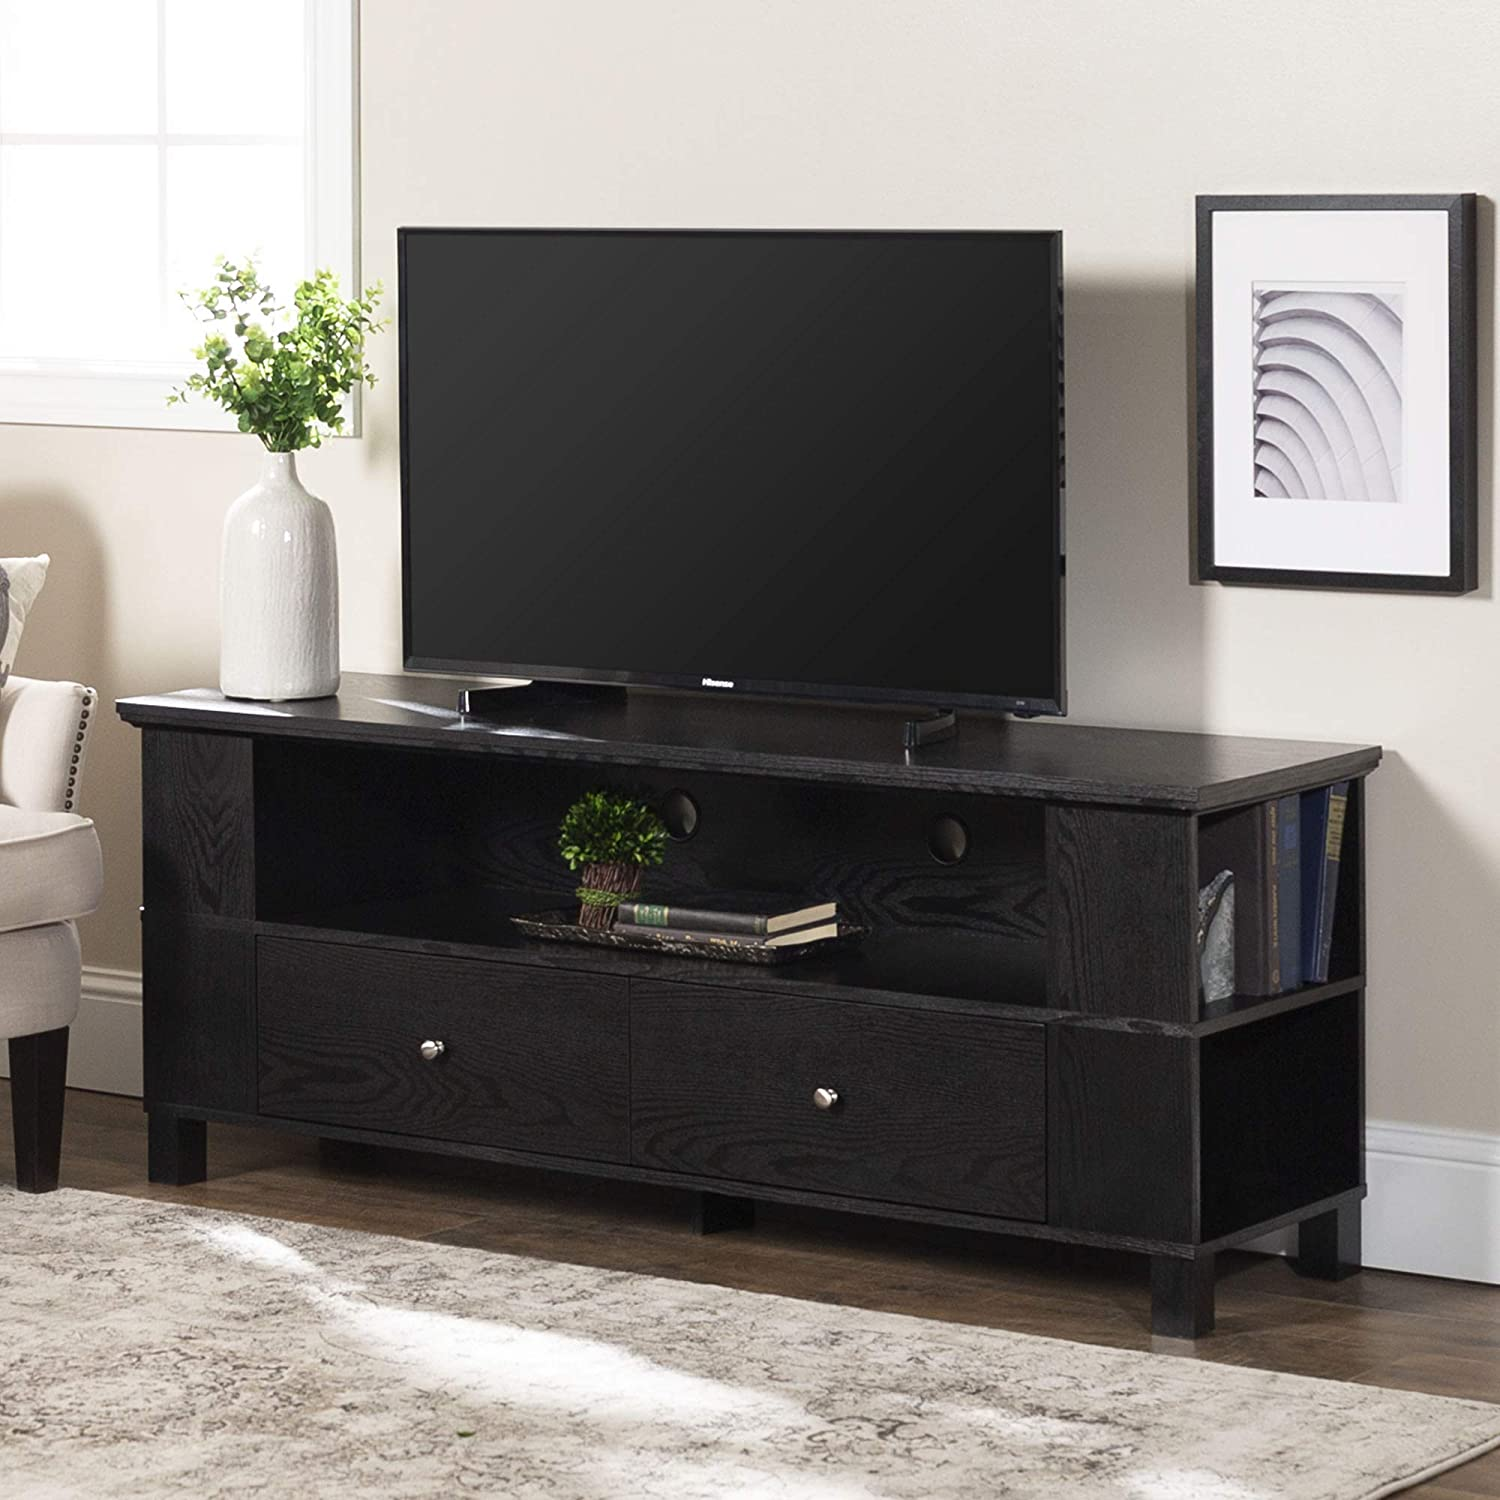 Amazon Com Walker Edison Rustic Tv Stand And Living Room Storage For Tv S Up To 66 Furniture Decor